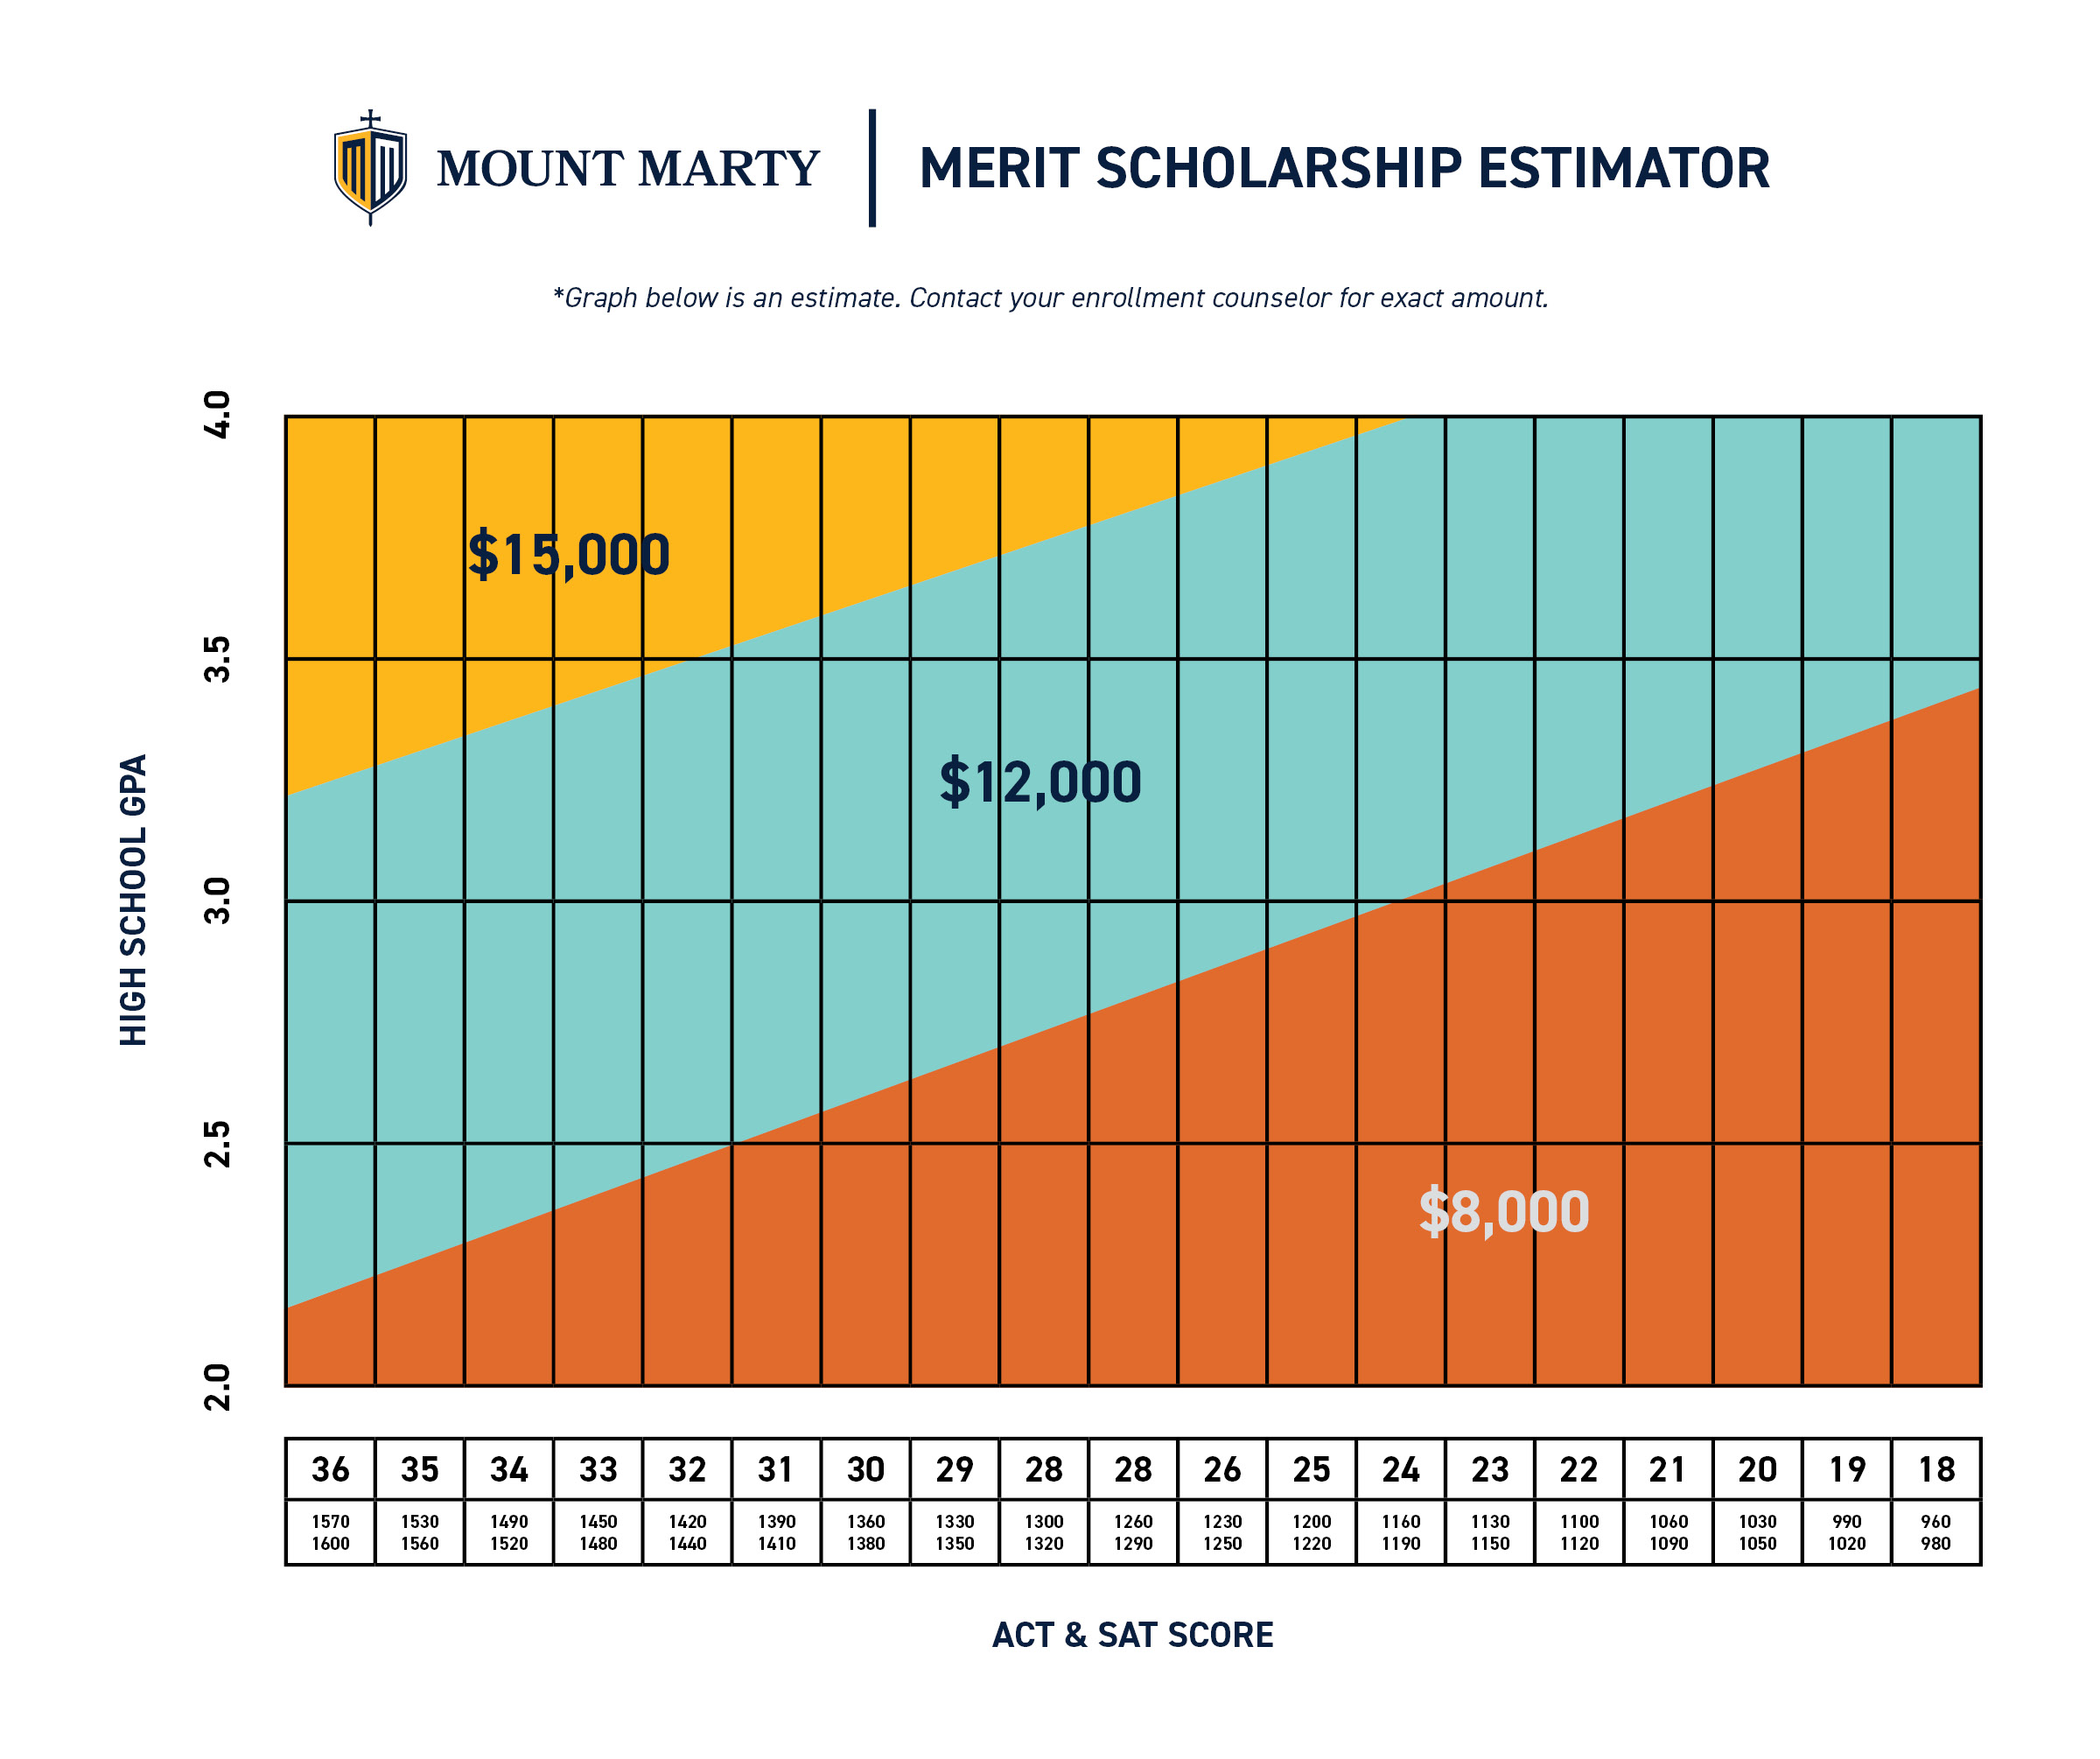 Scholarship and Aid Estimator - estimate only, contact admissions counselor for a confirmed amount